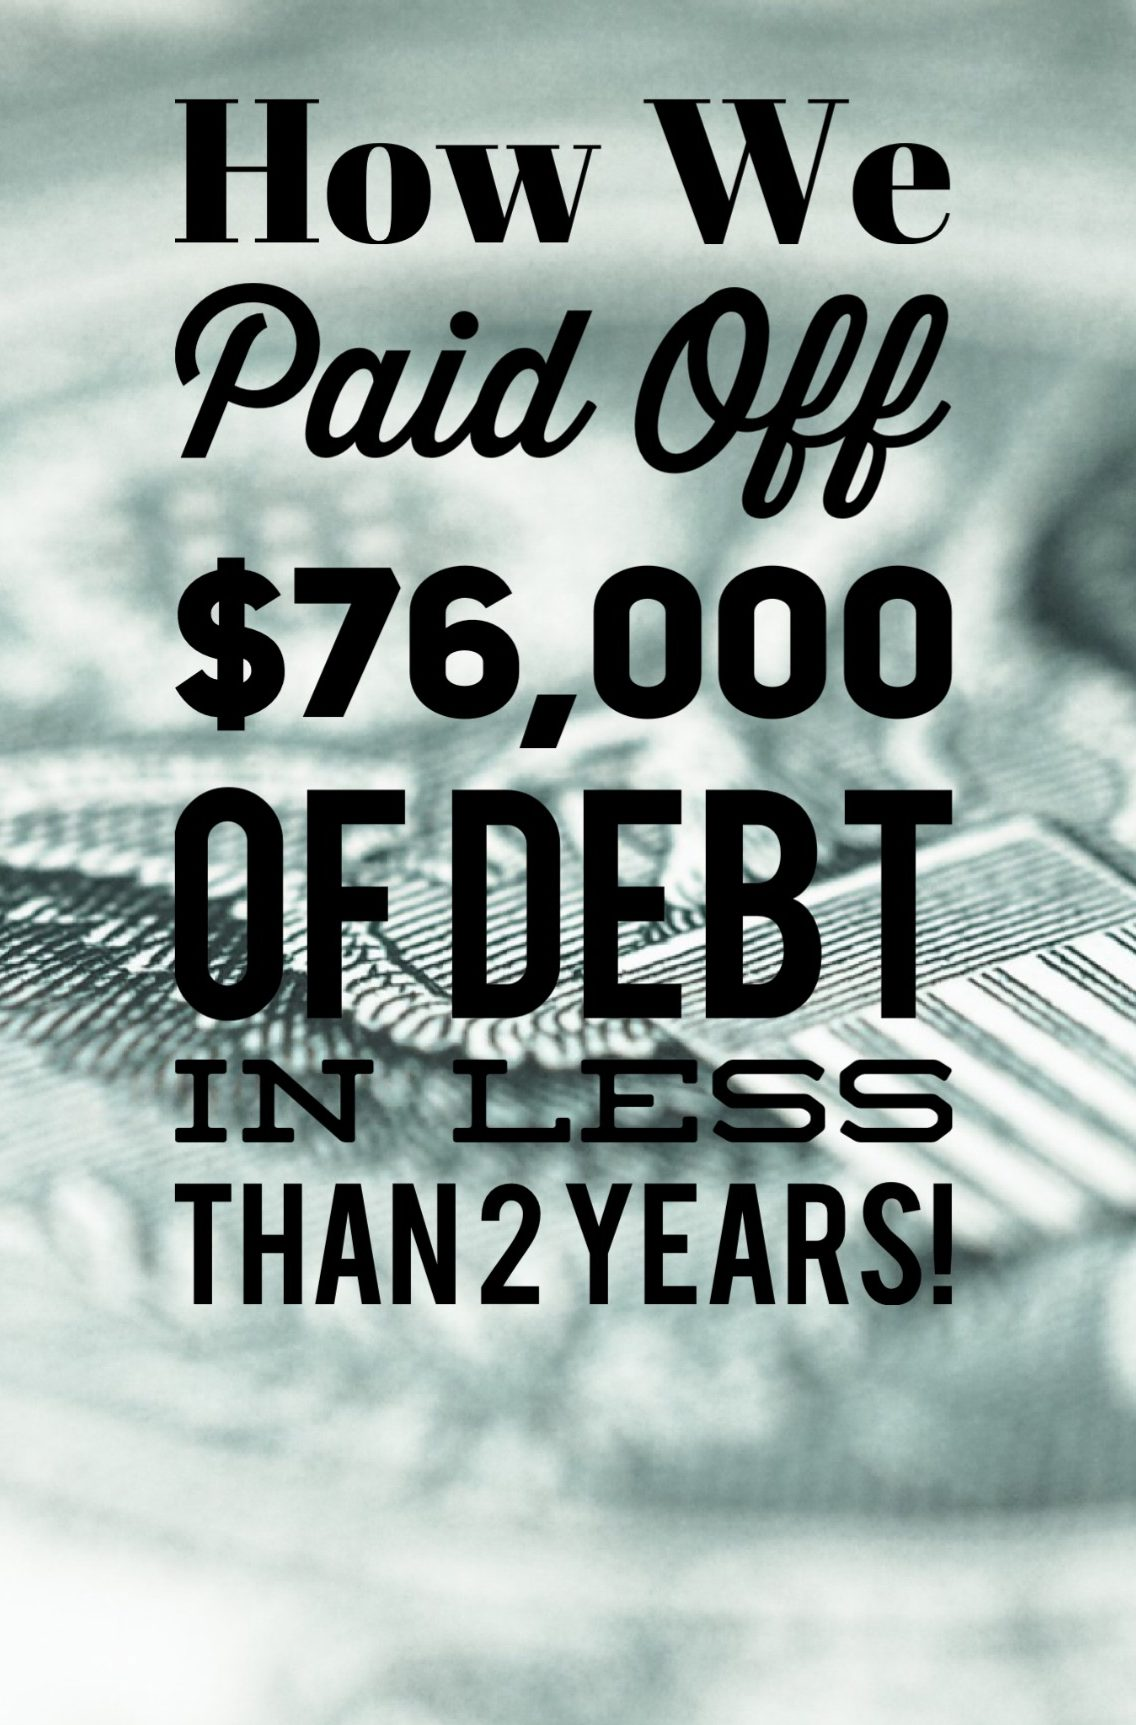 How We Paid Off $76,000 Of Debt In Less Than 2 Years!